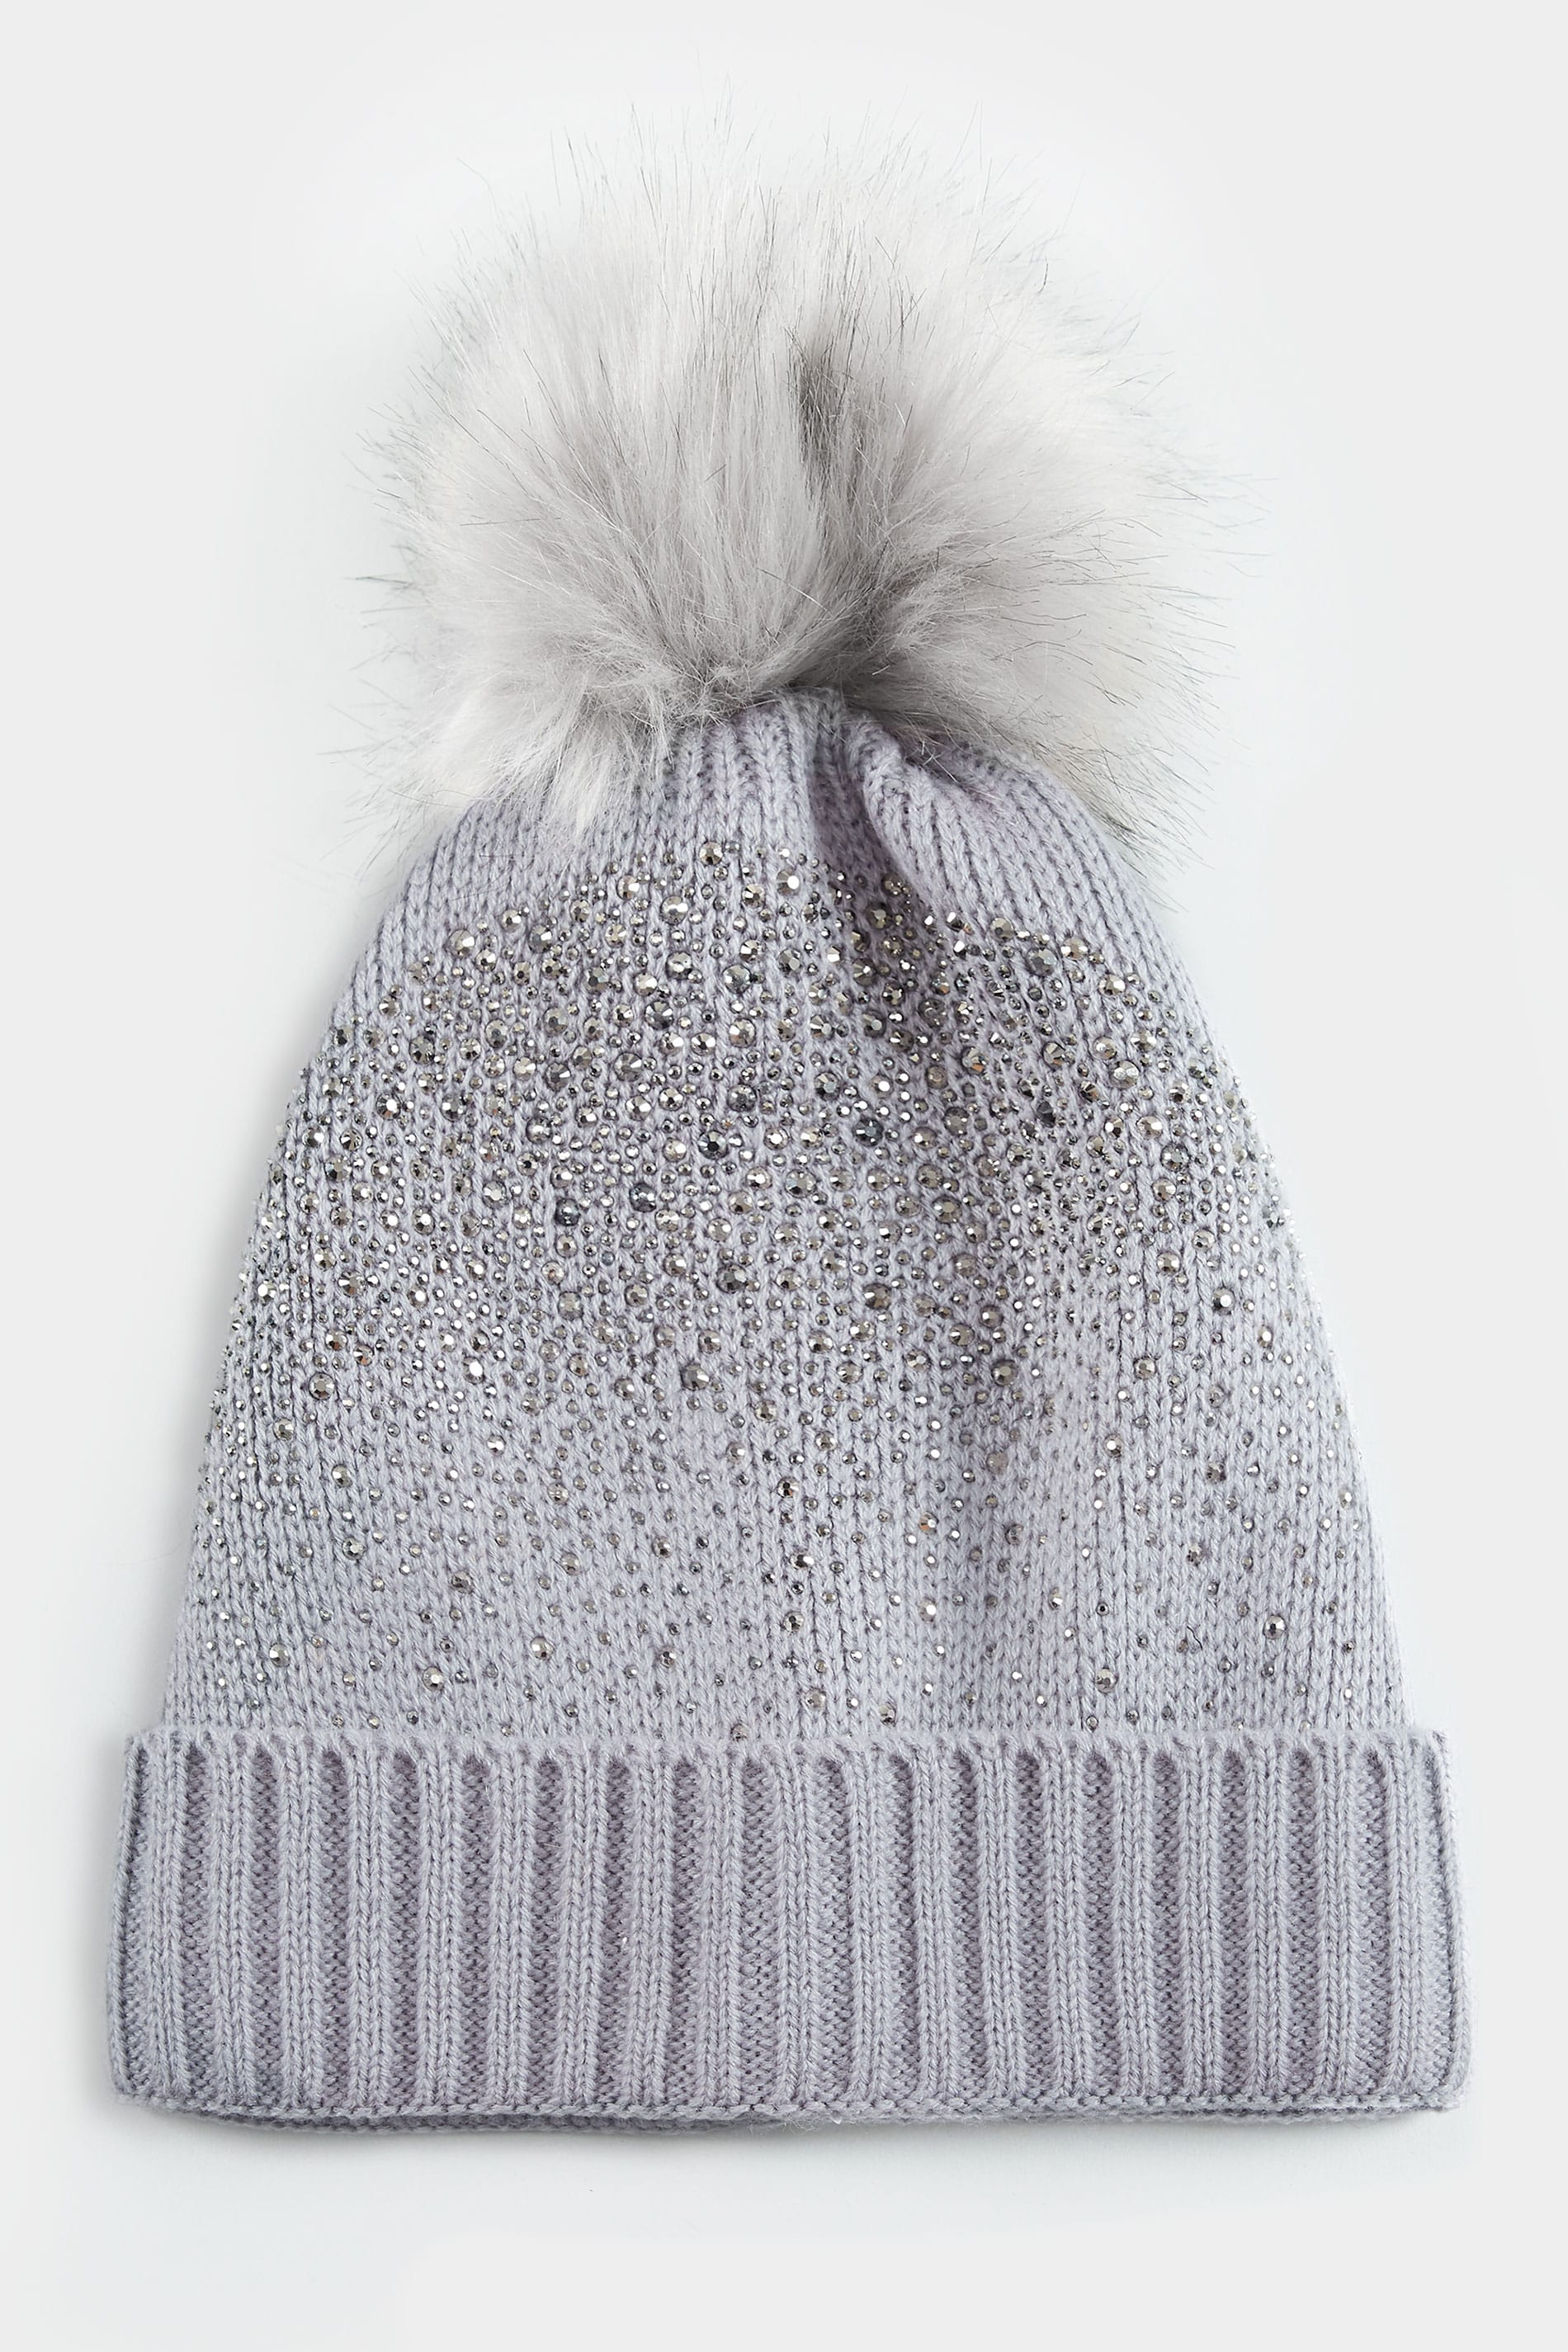 Grey Sparkle Hat With Pom-Pom 10ed088c374